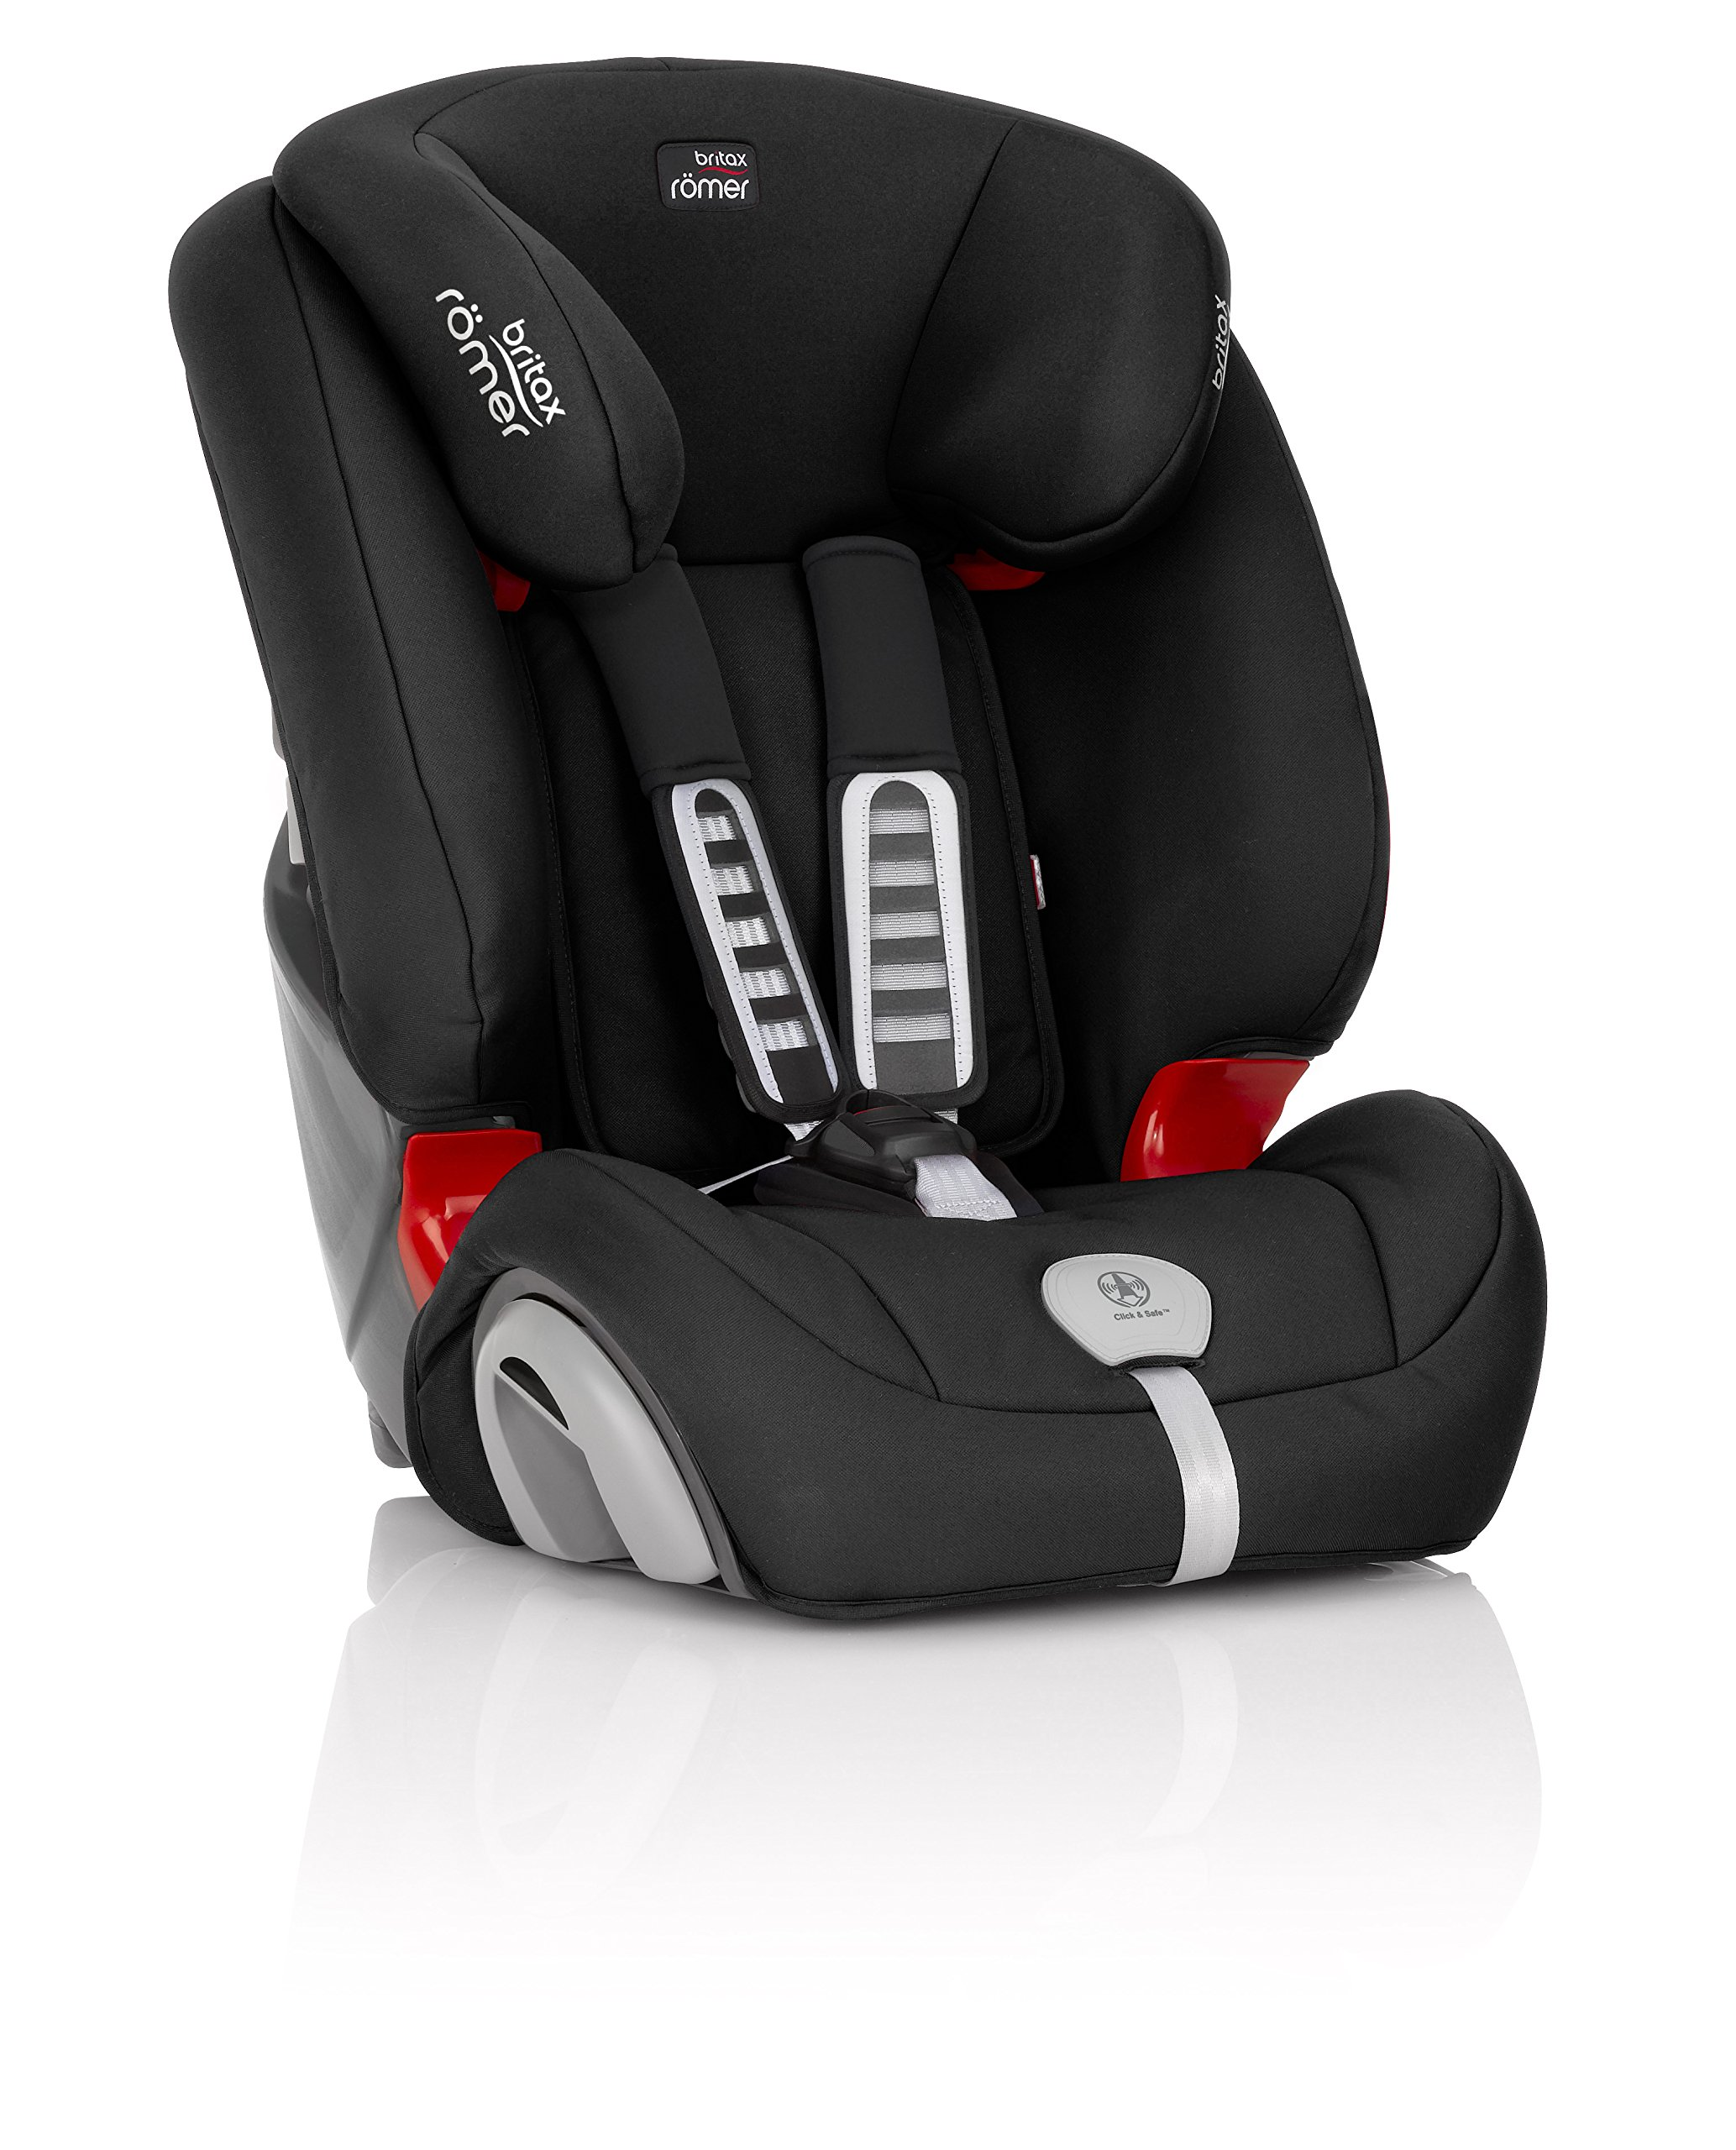 Britax Römer EVOLVA 1-2-3 PLUS Group 1-2-3 (9-36kg) Car Seat - Cosmos Black  Installation, 3-point seat belt only , Forward facing installation 9 - 36 kg CLICK & SAFE audible harness system for that extra reassurance when securing your child in the seat The padded headrest and harness can easily be adjusted with one hand to suit your child's height. Its 5-point harness, performance chest pads and highback booster protection ensure maximum safety for your child from 9 months all the way up to 12 years 3